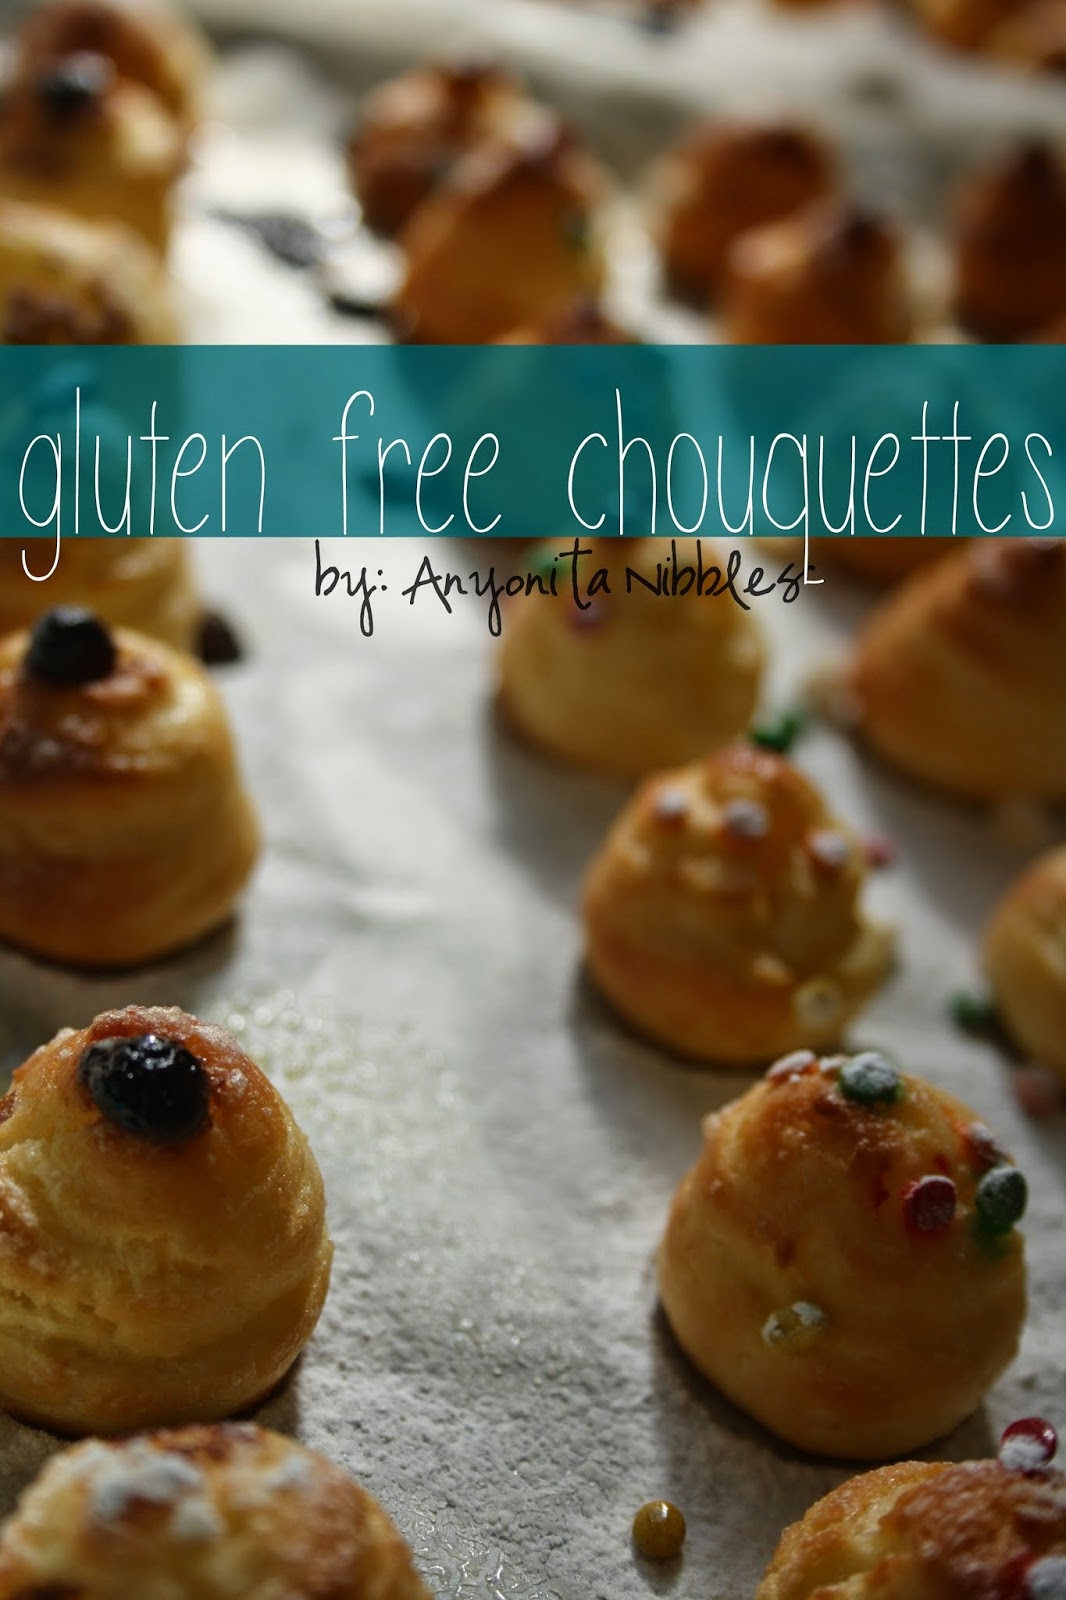 These gluten free sugar topped choux pastry puffs make a perfect treat. Best served straight from the oven from Anyonita Nibbles